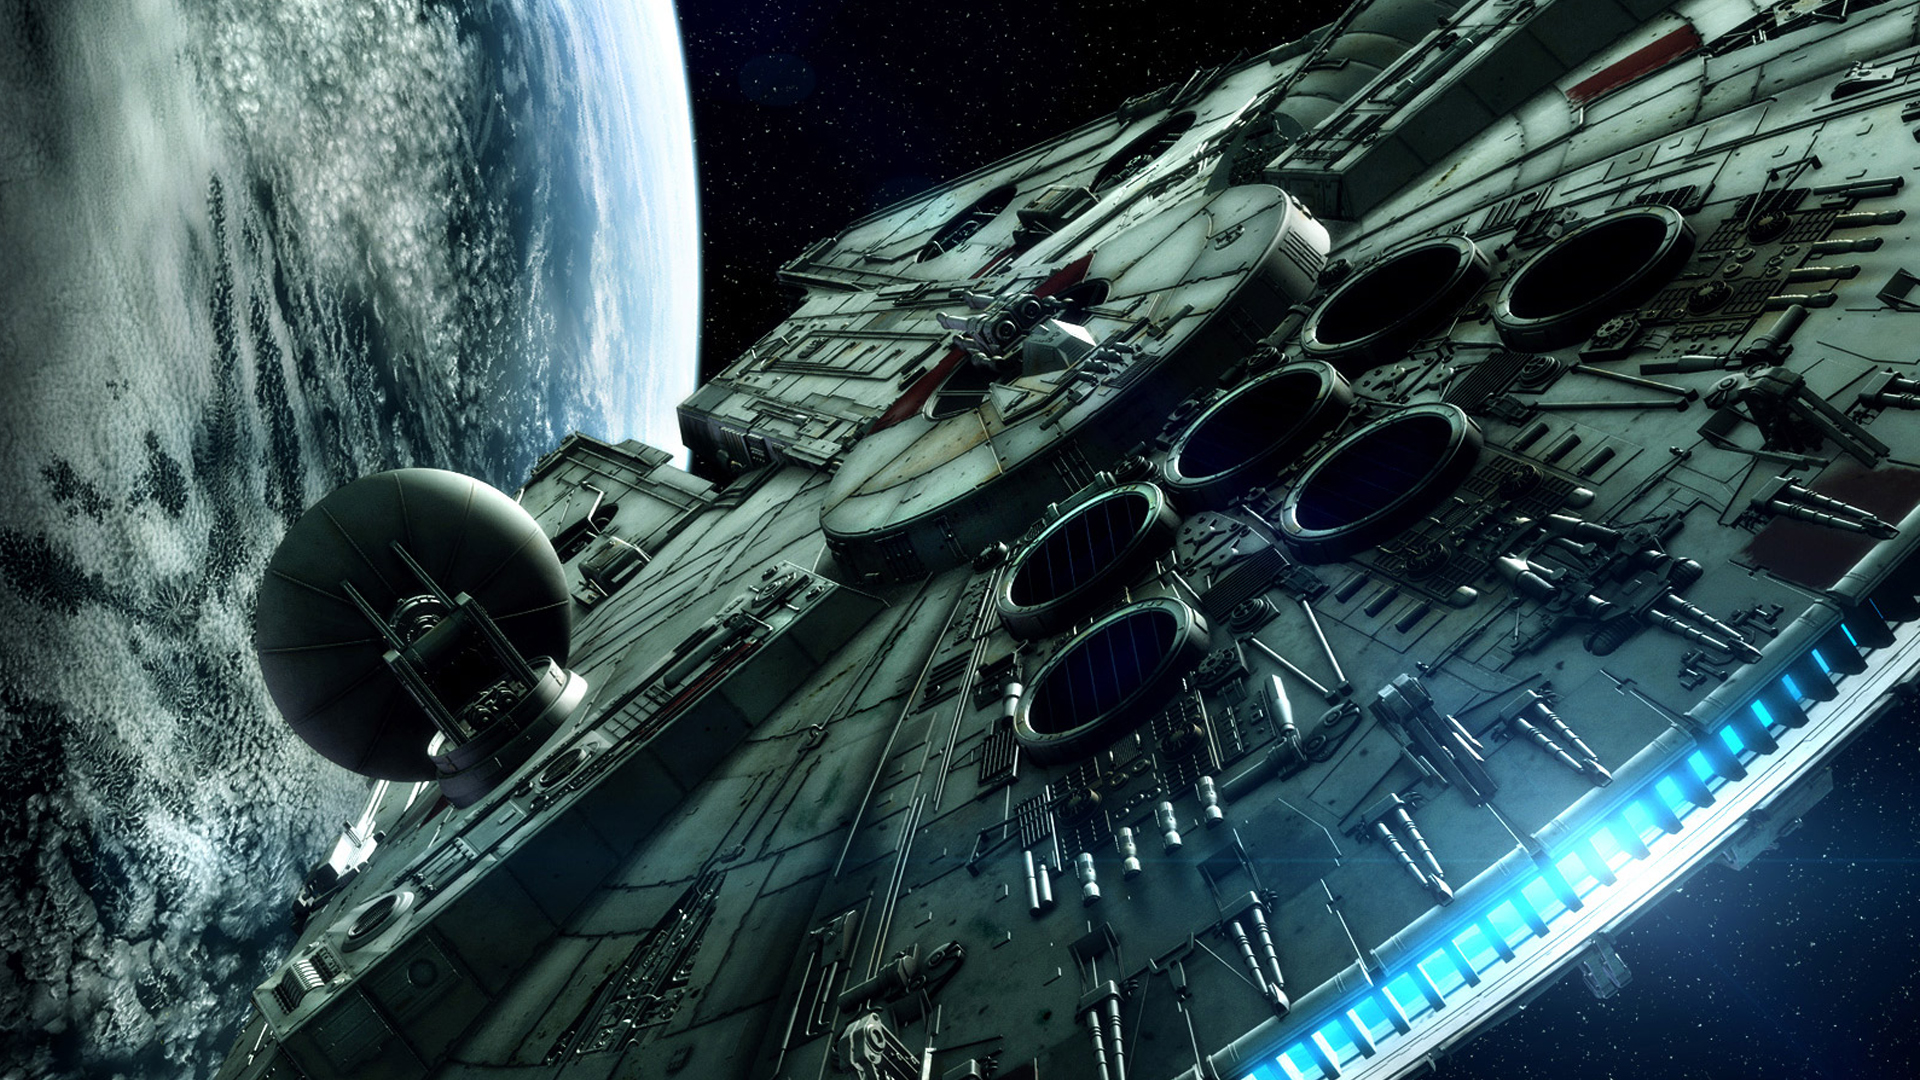 gaint-space-station-in-star-war-movie-free-download-fbulous-hd-widescreen-wallpapers-of-star-wars-movie-series.jpg